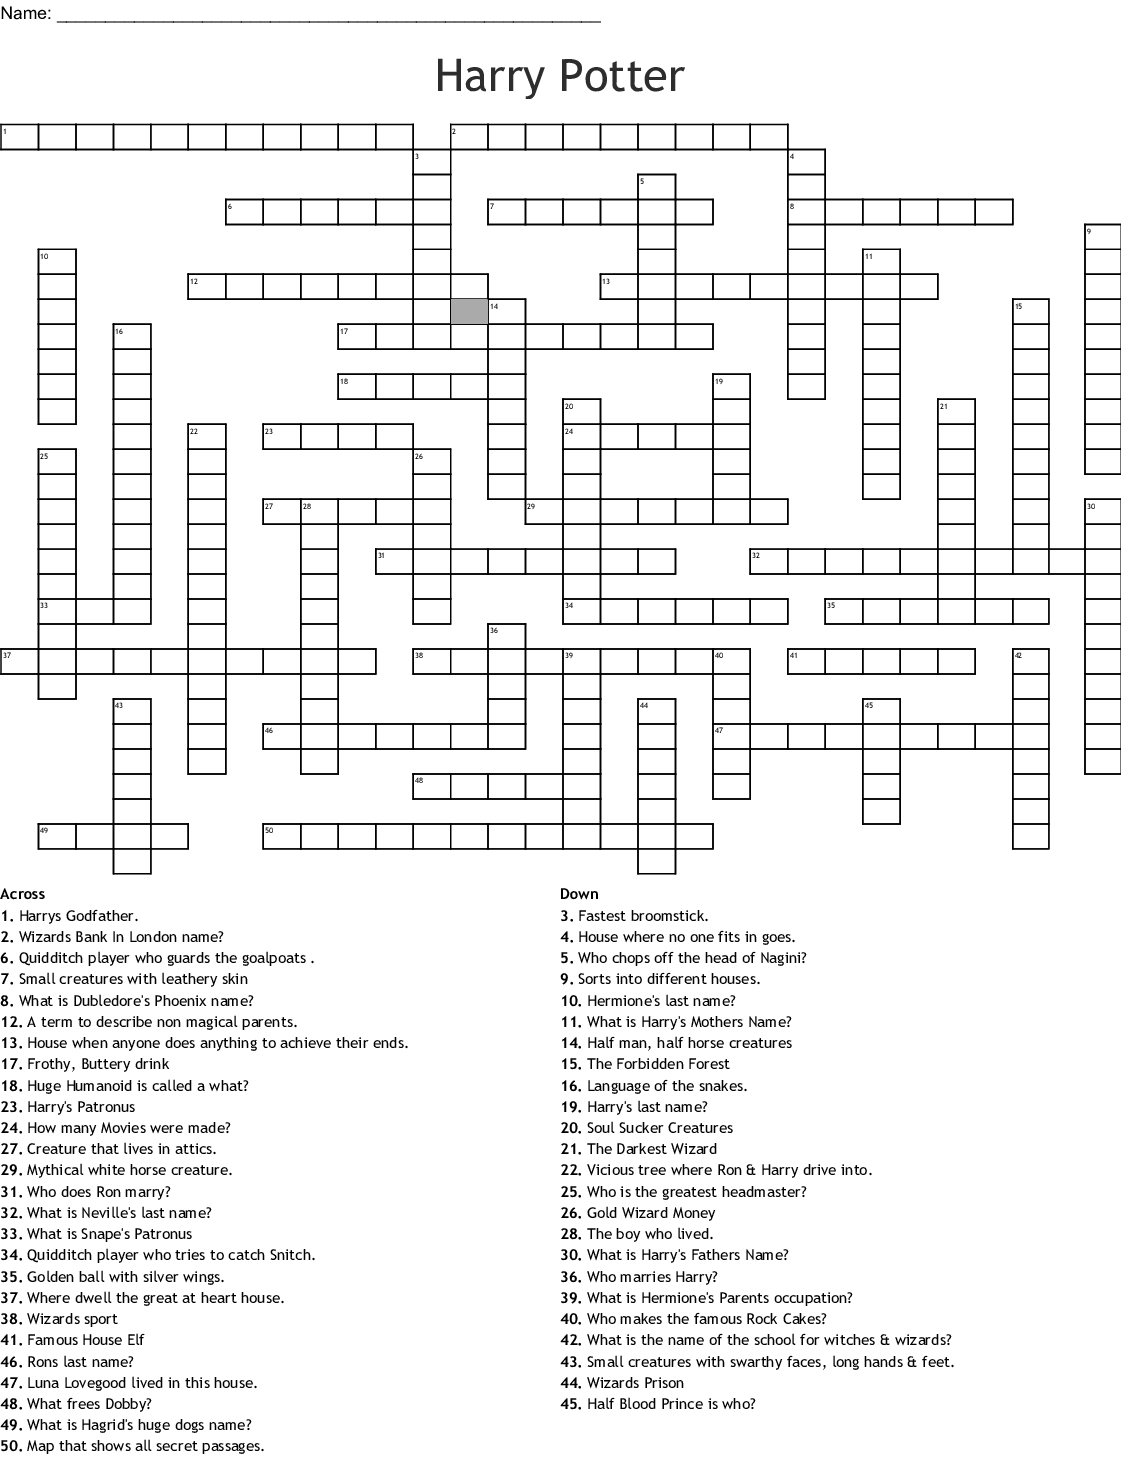 Harry Potter Crossword Puzzle Printable That Are Magic